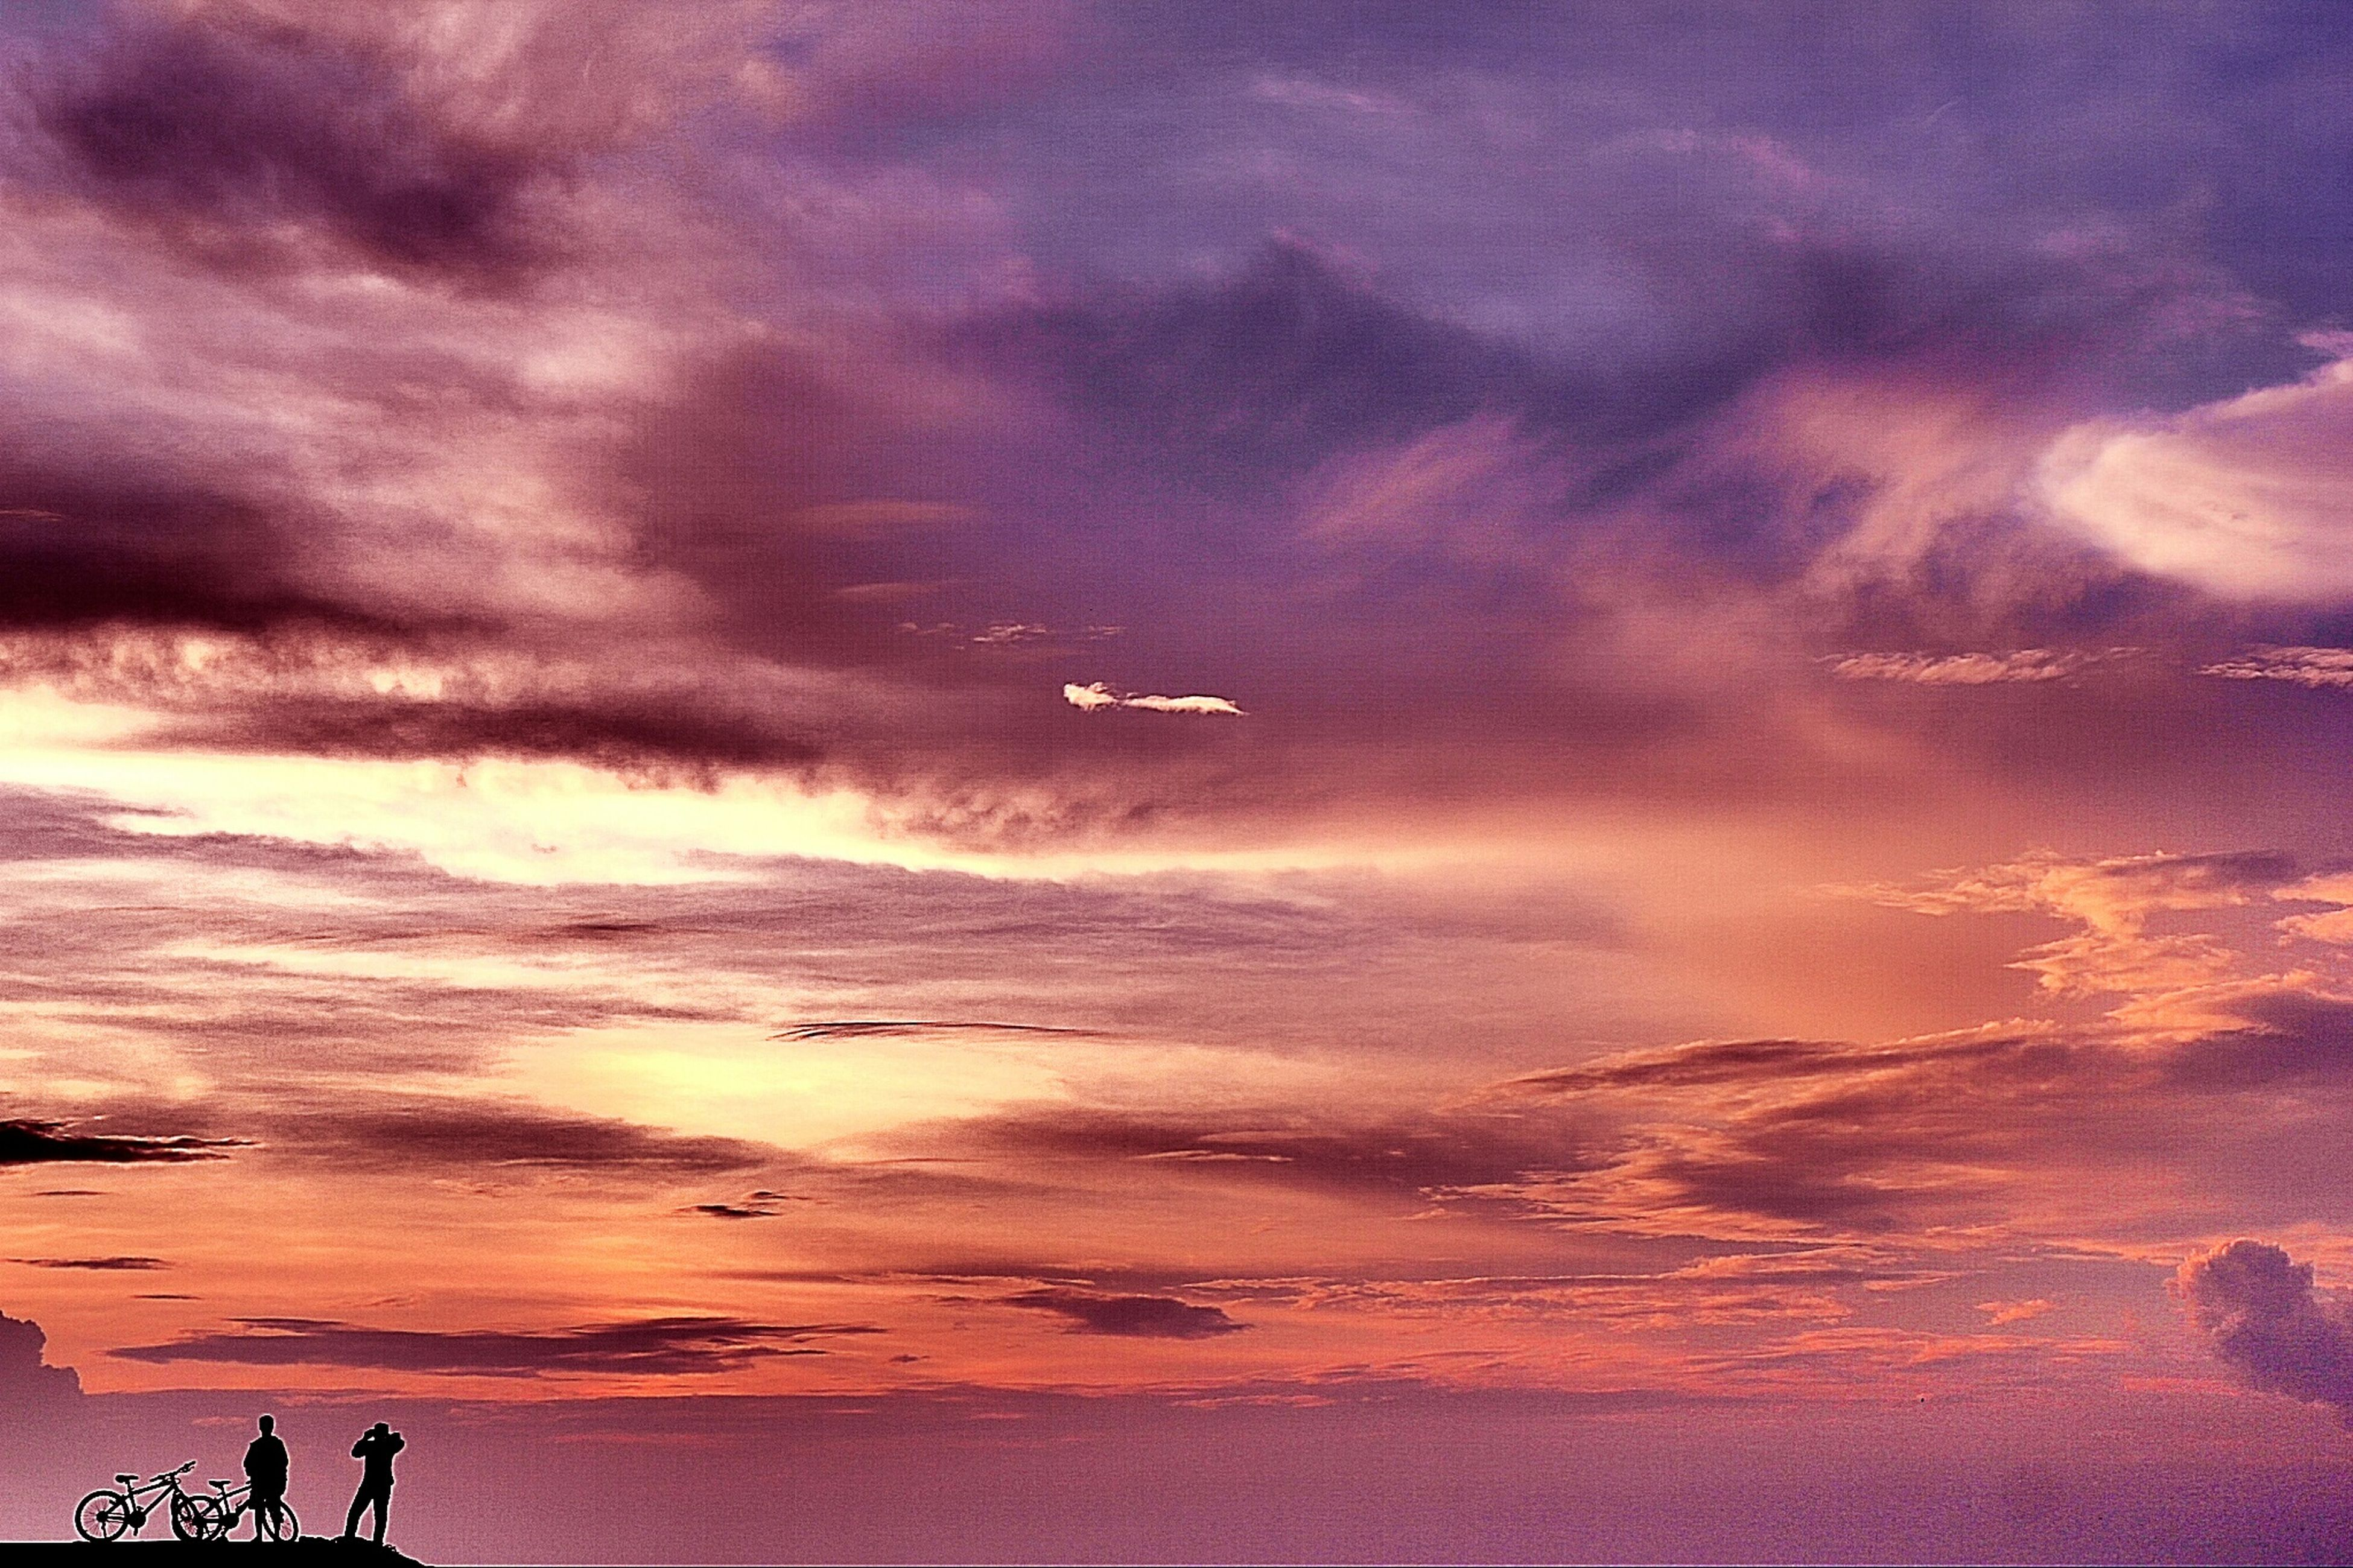 sky, cloud - sky, sunset, sea, cloudy, scenics, beauty in nature, dramatic sky, horizon over water, tranquil scene, weather, silhouette, tranquility, beach, nature, dusk, cloud, water, idyllic, storm cloud